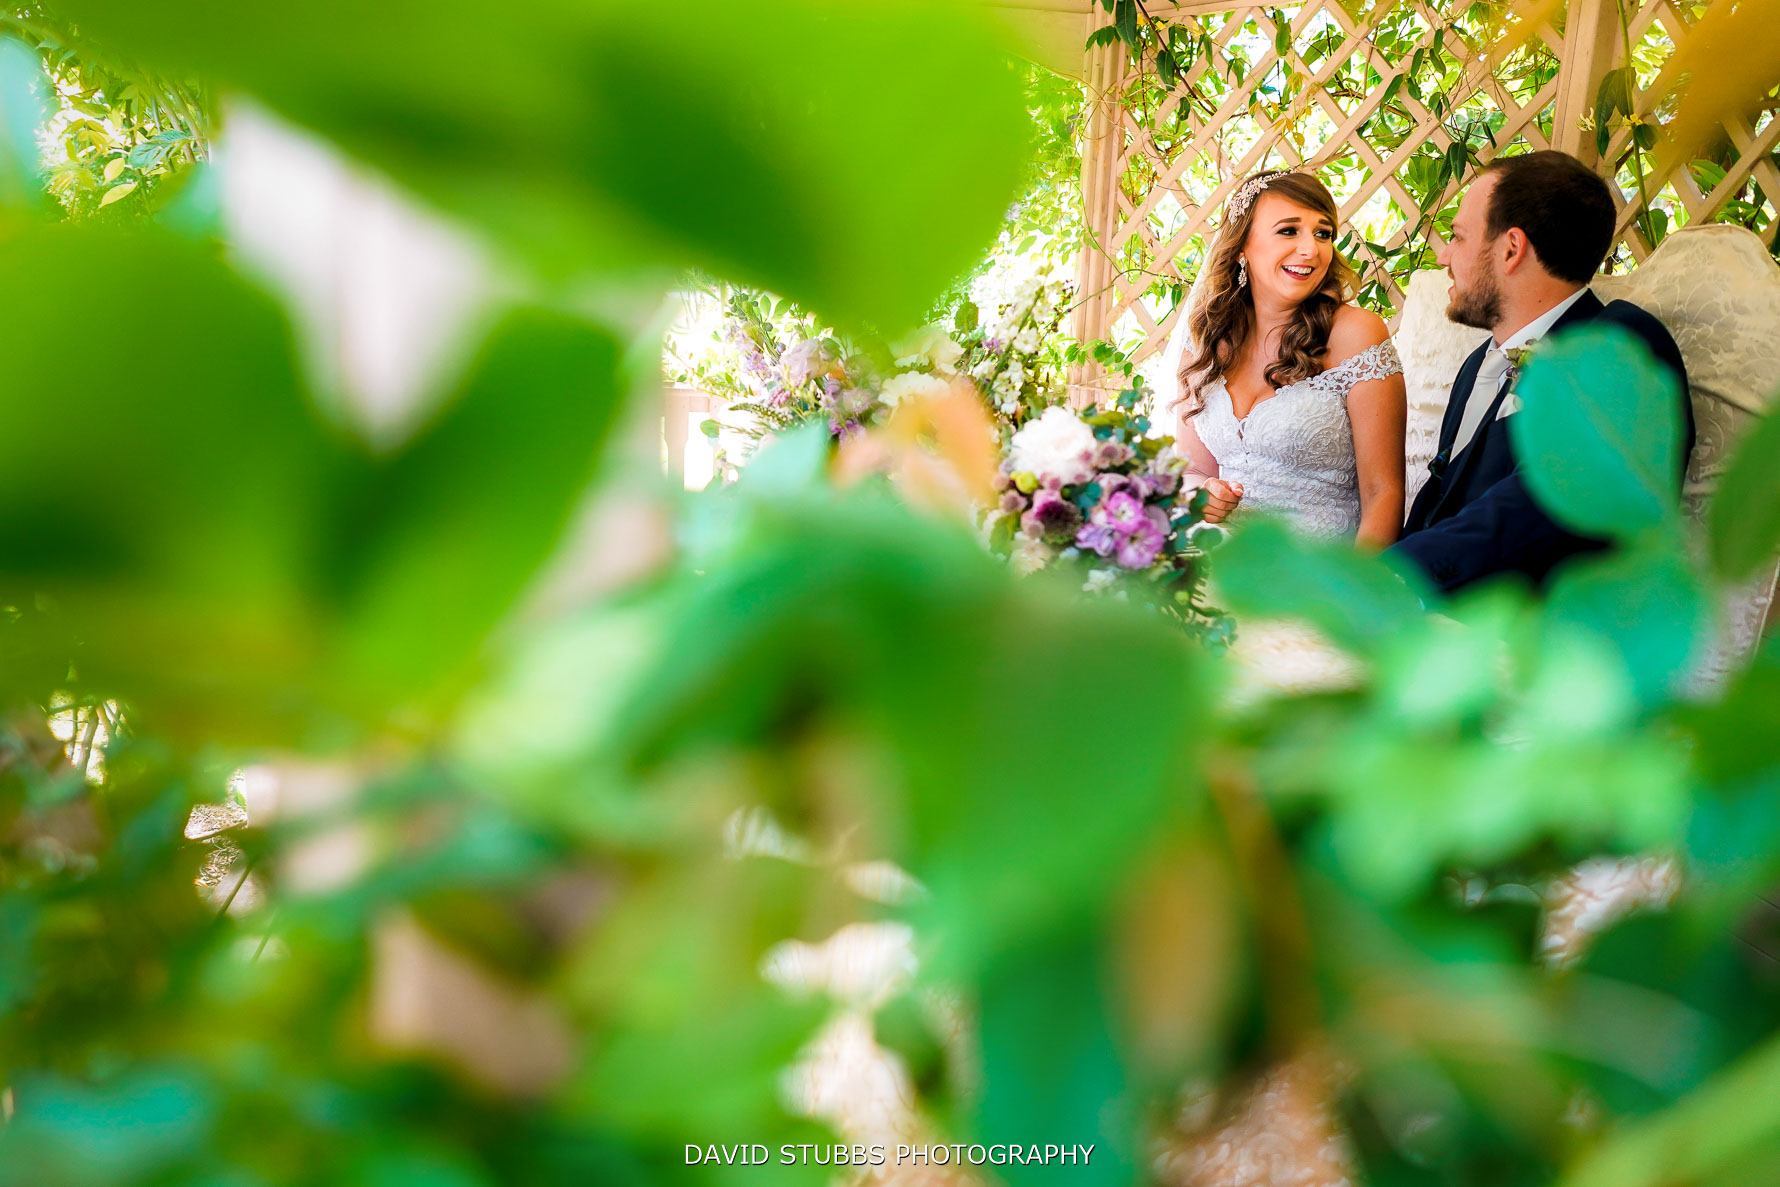 bride and gorom in love under canopy